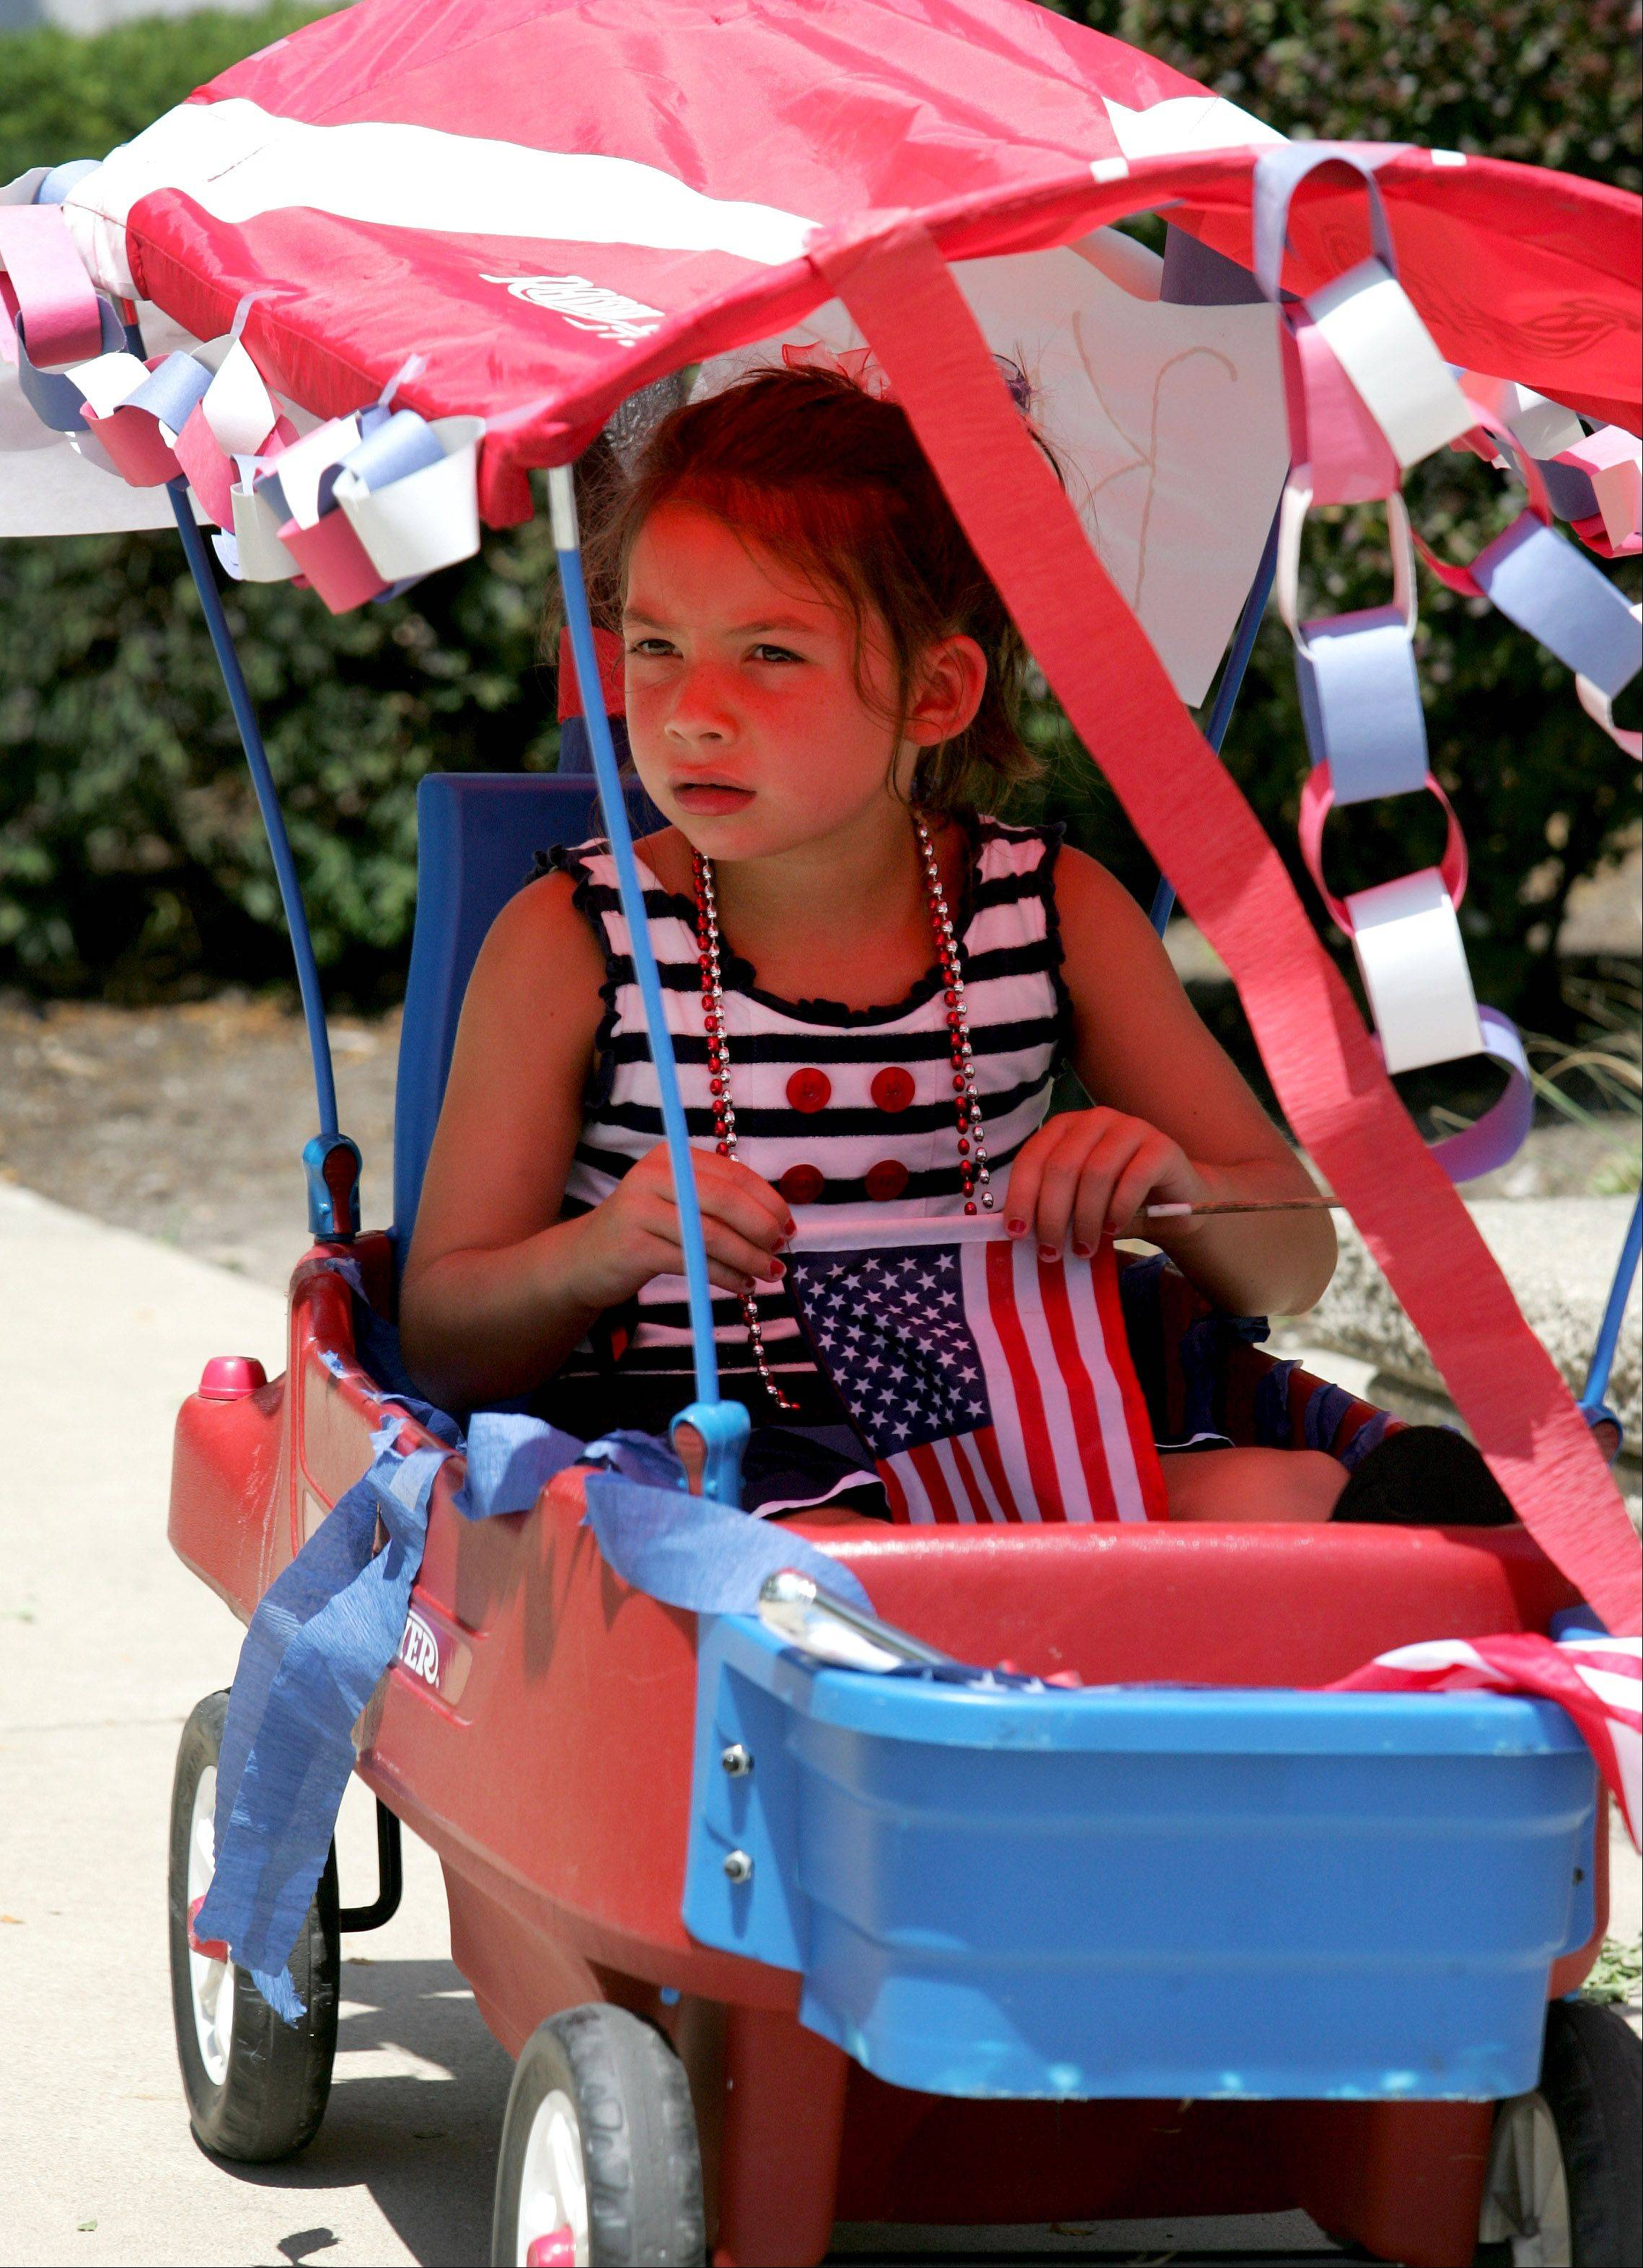 Natalie Snow, 7, of Wheaton, gets a shady spot in her wagon to watch the 4th of July parade in Glen Ellyn on Wednesday.